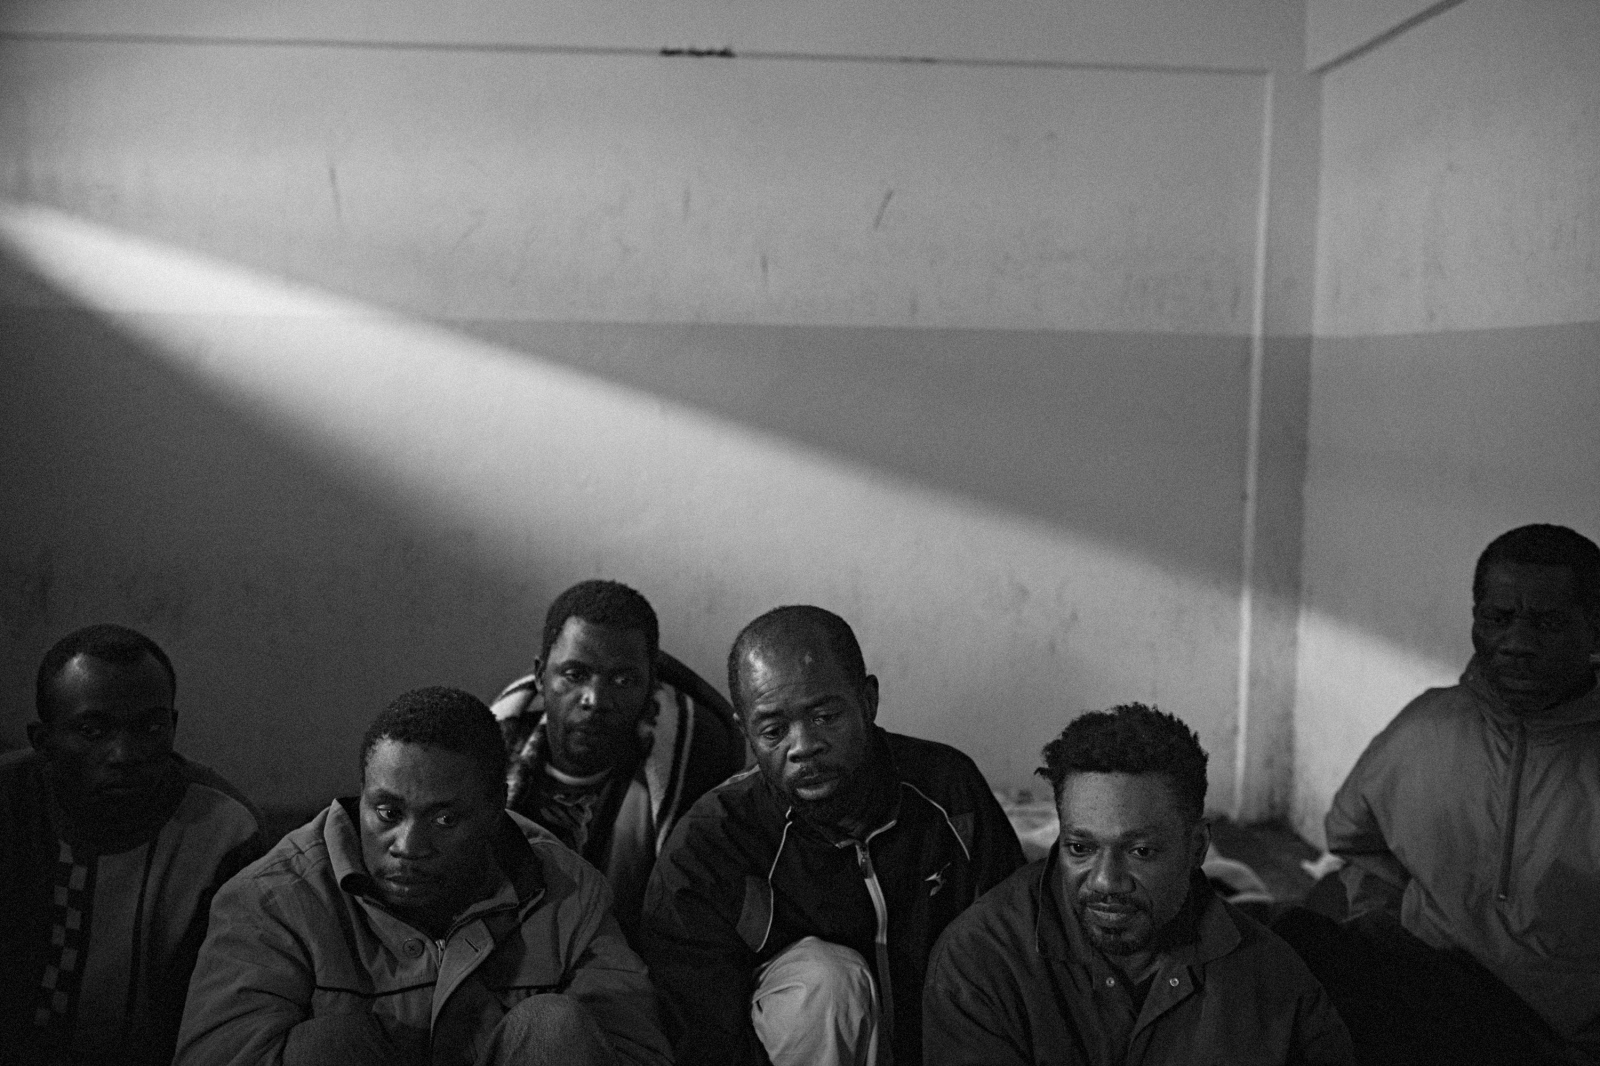 Suspected mercenaries are held in a prison cell at the courthouse in Benghazi. Most turned out to be innocent migrant workers caught up in the revolution, suspected of being hired by Ghaddafi to kill protesters. February 25, 2011, Benghazi, Libya.